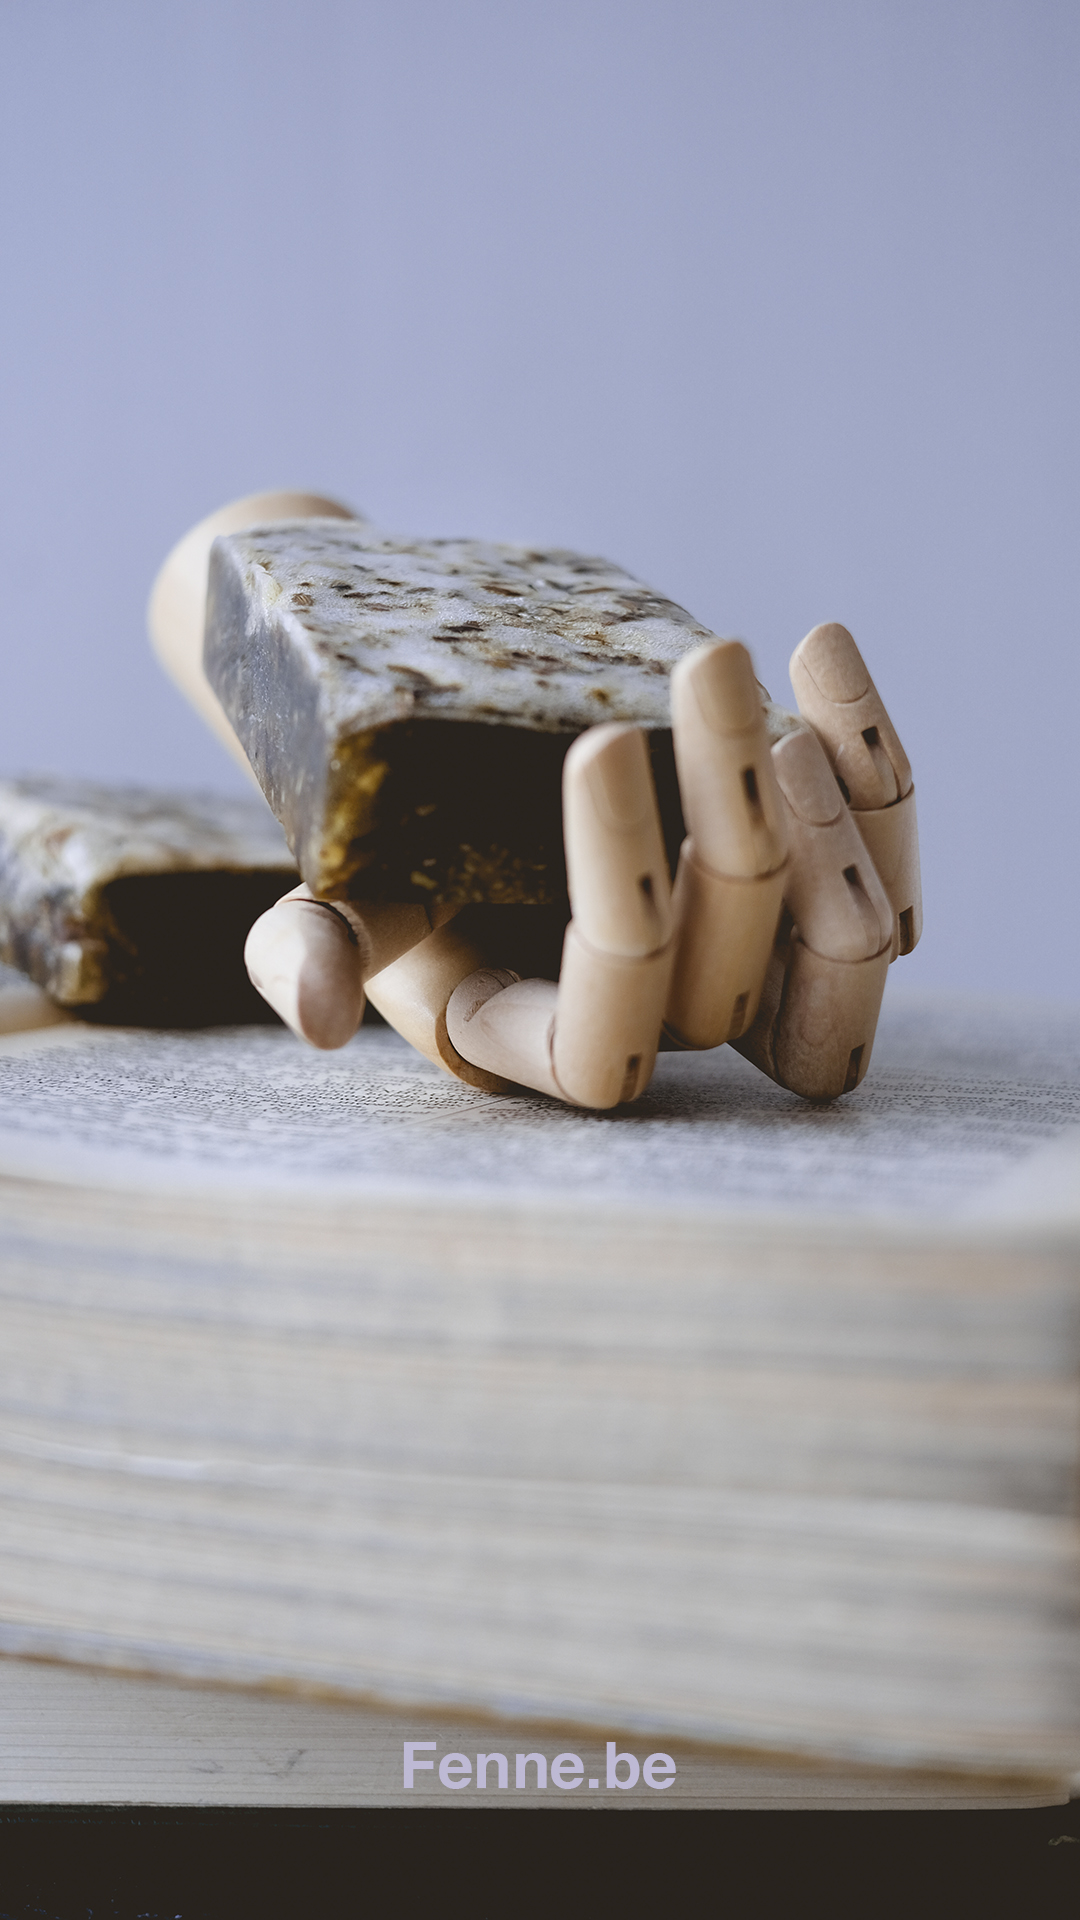 DIY natural soapmaking, learning new things, creative lifestyle, www.Fenne.be